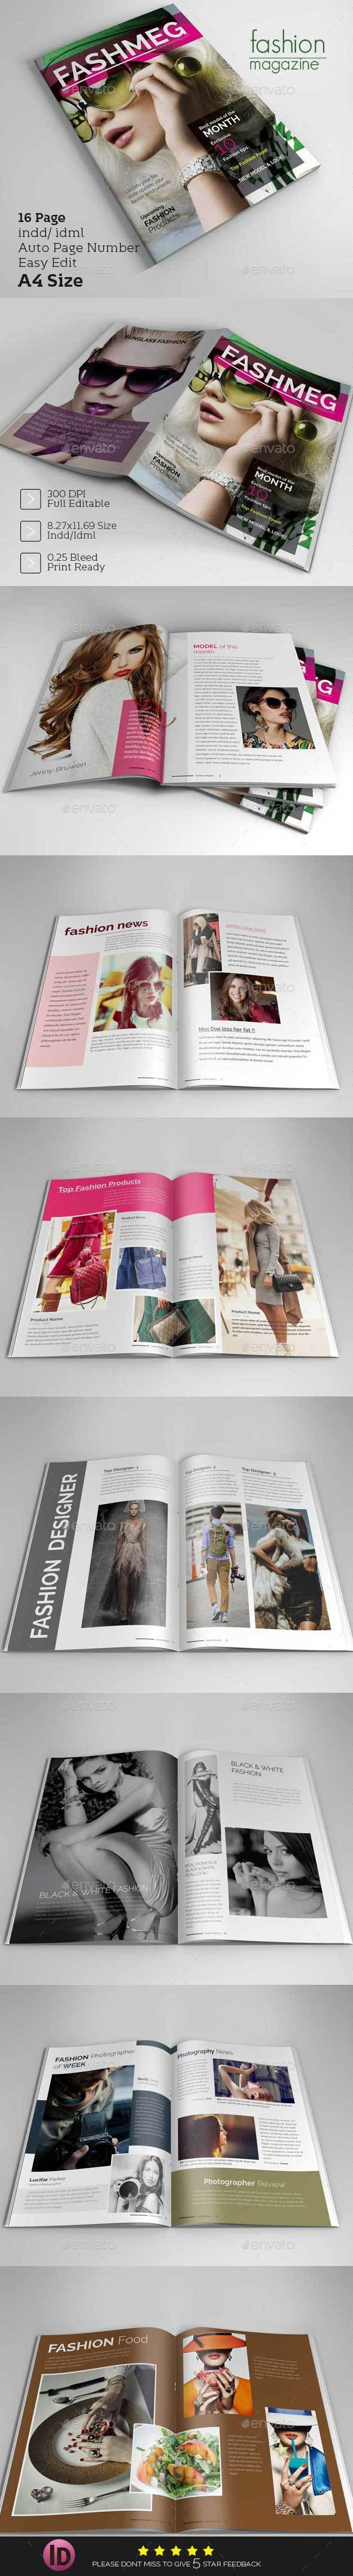 Fashion Magazine Design Template - Magazines Print Templates